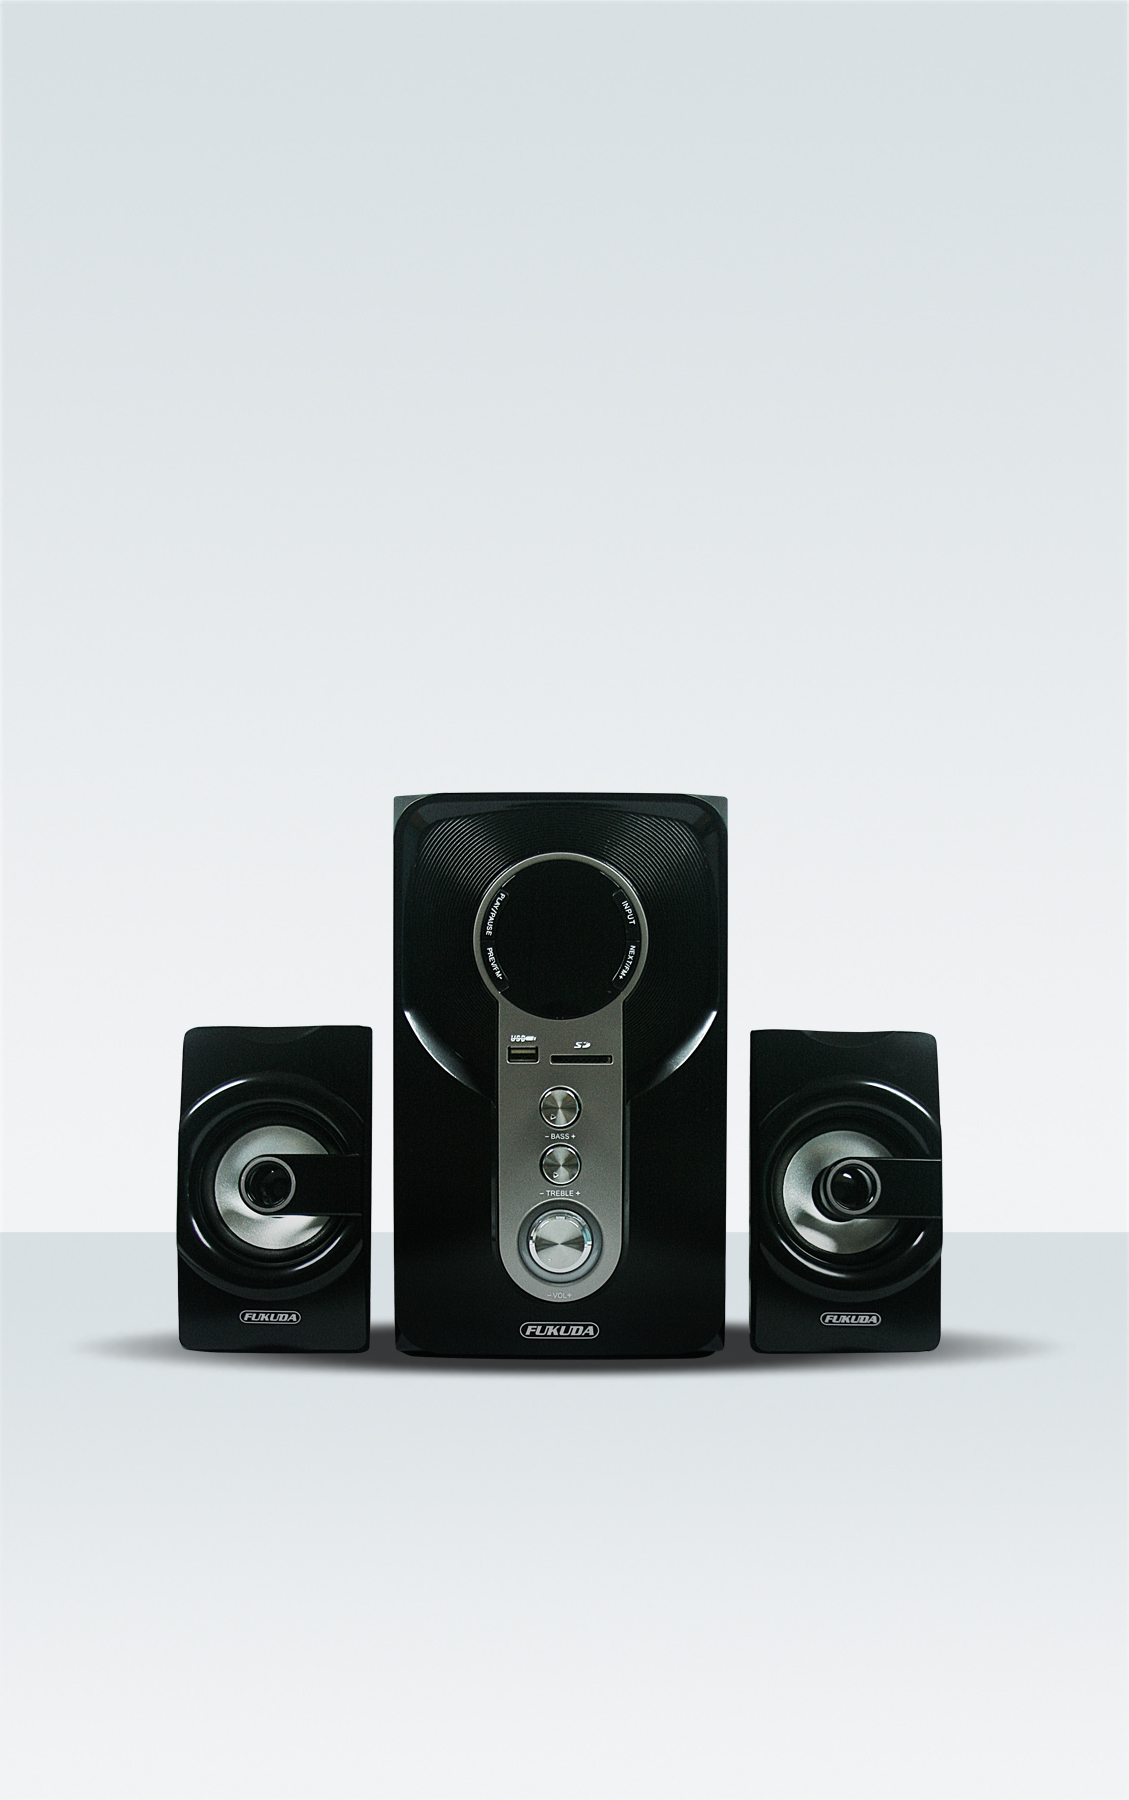 2.1 CH HOME THEATER SPEAKER 30W RMS